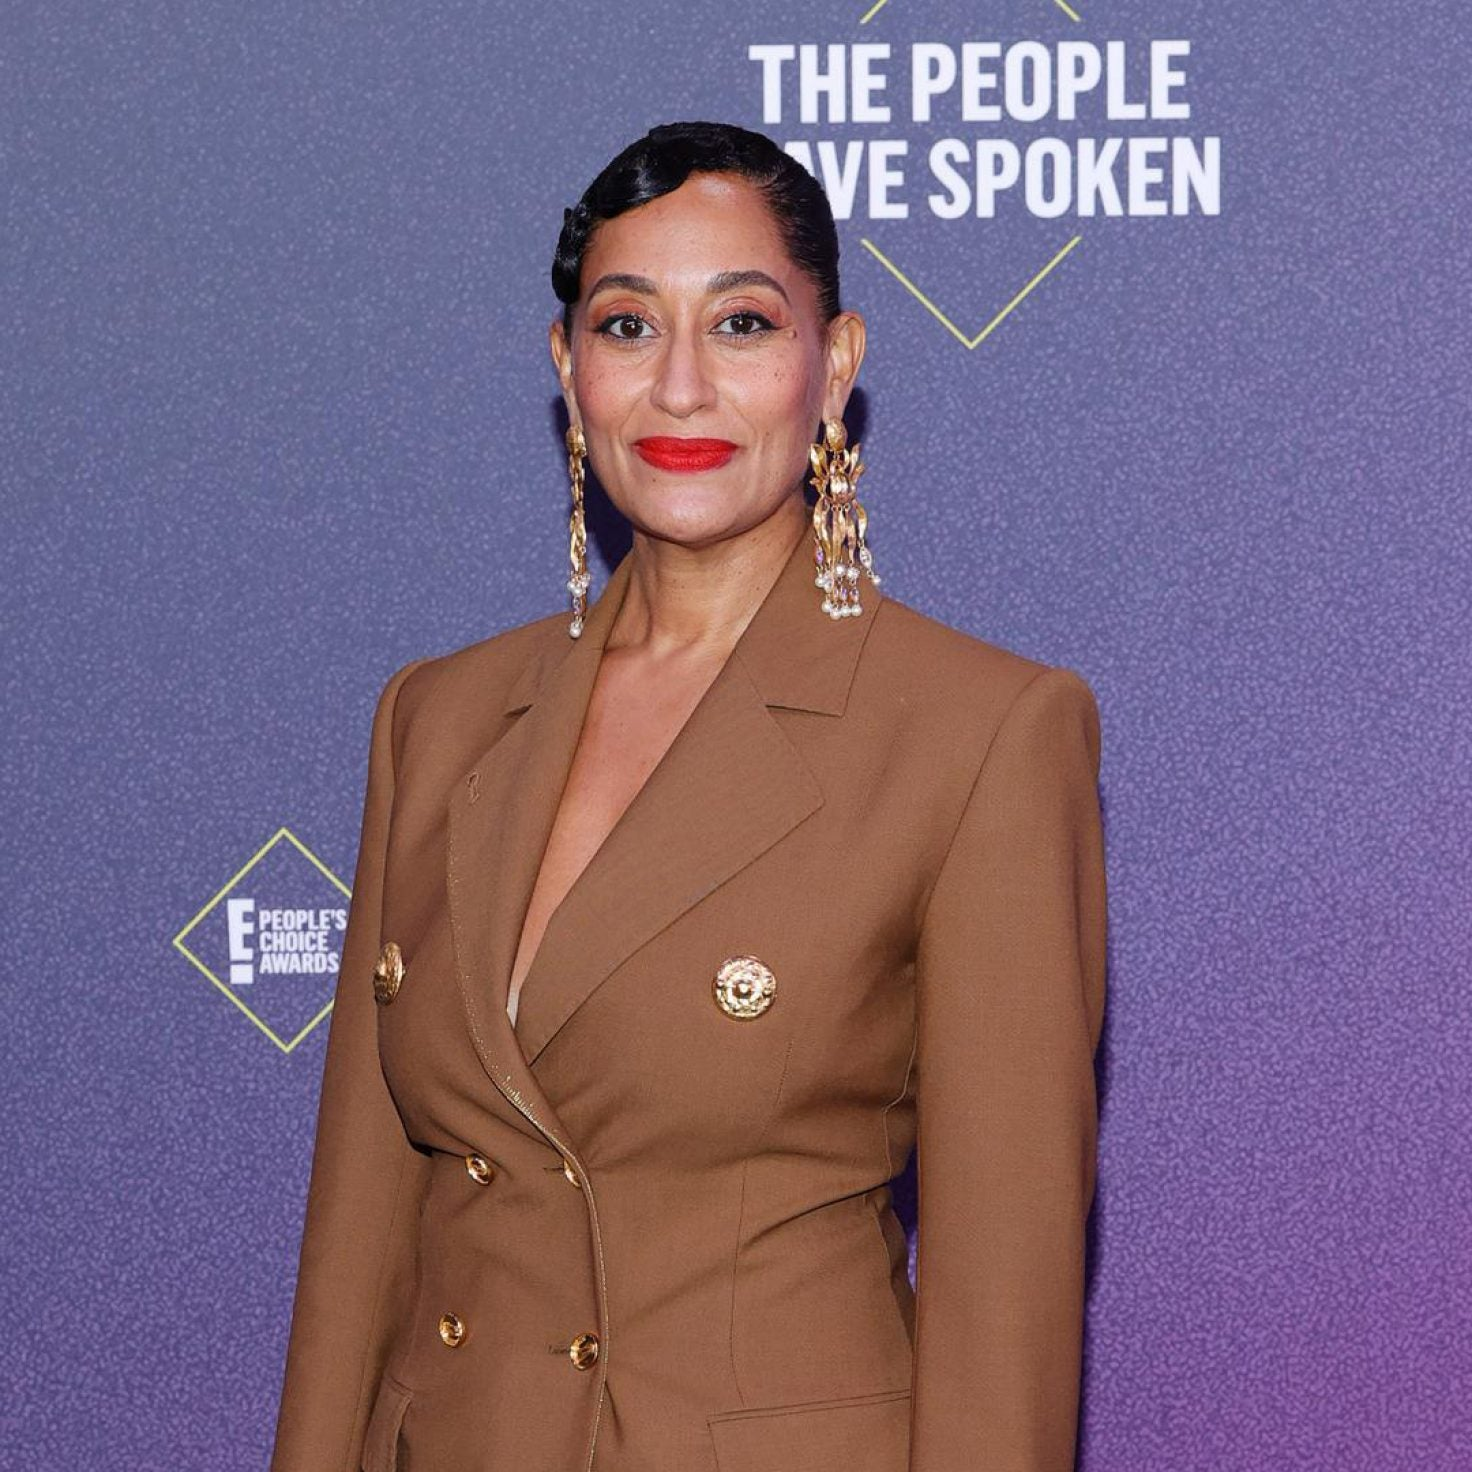 Tracee Ellis Ross Honored As Style Icon At The 2020 People's Choice Awards